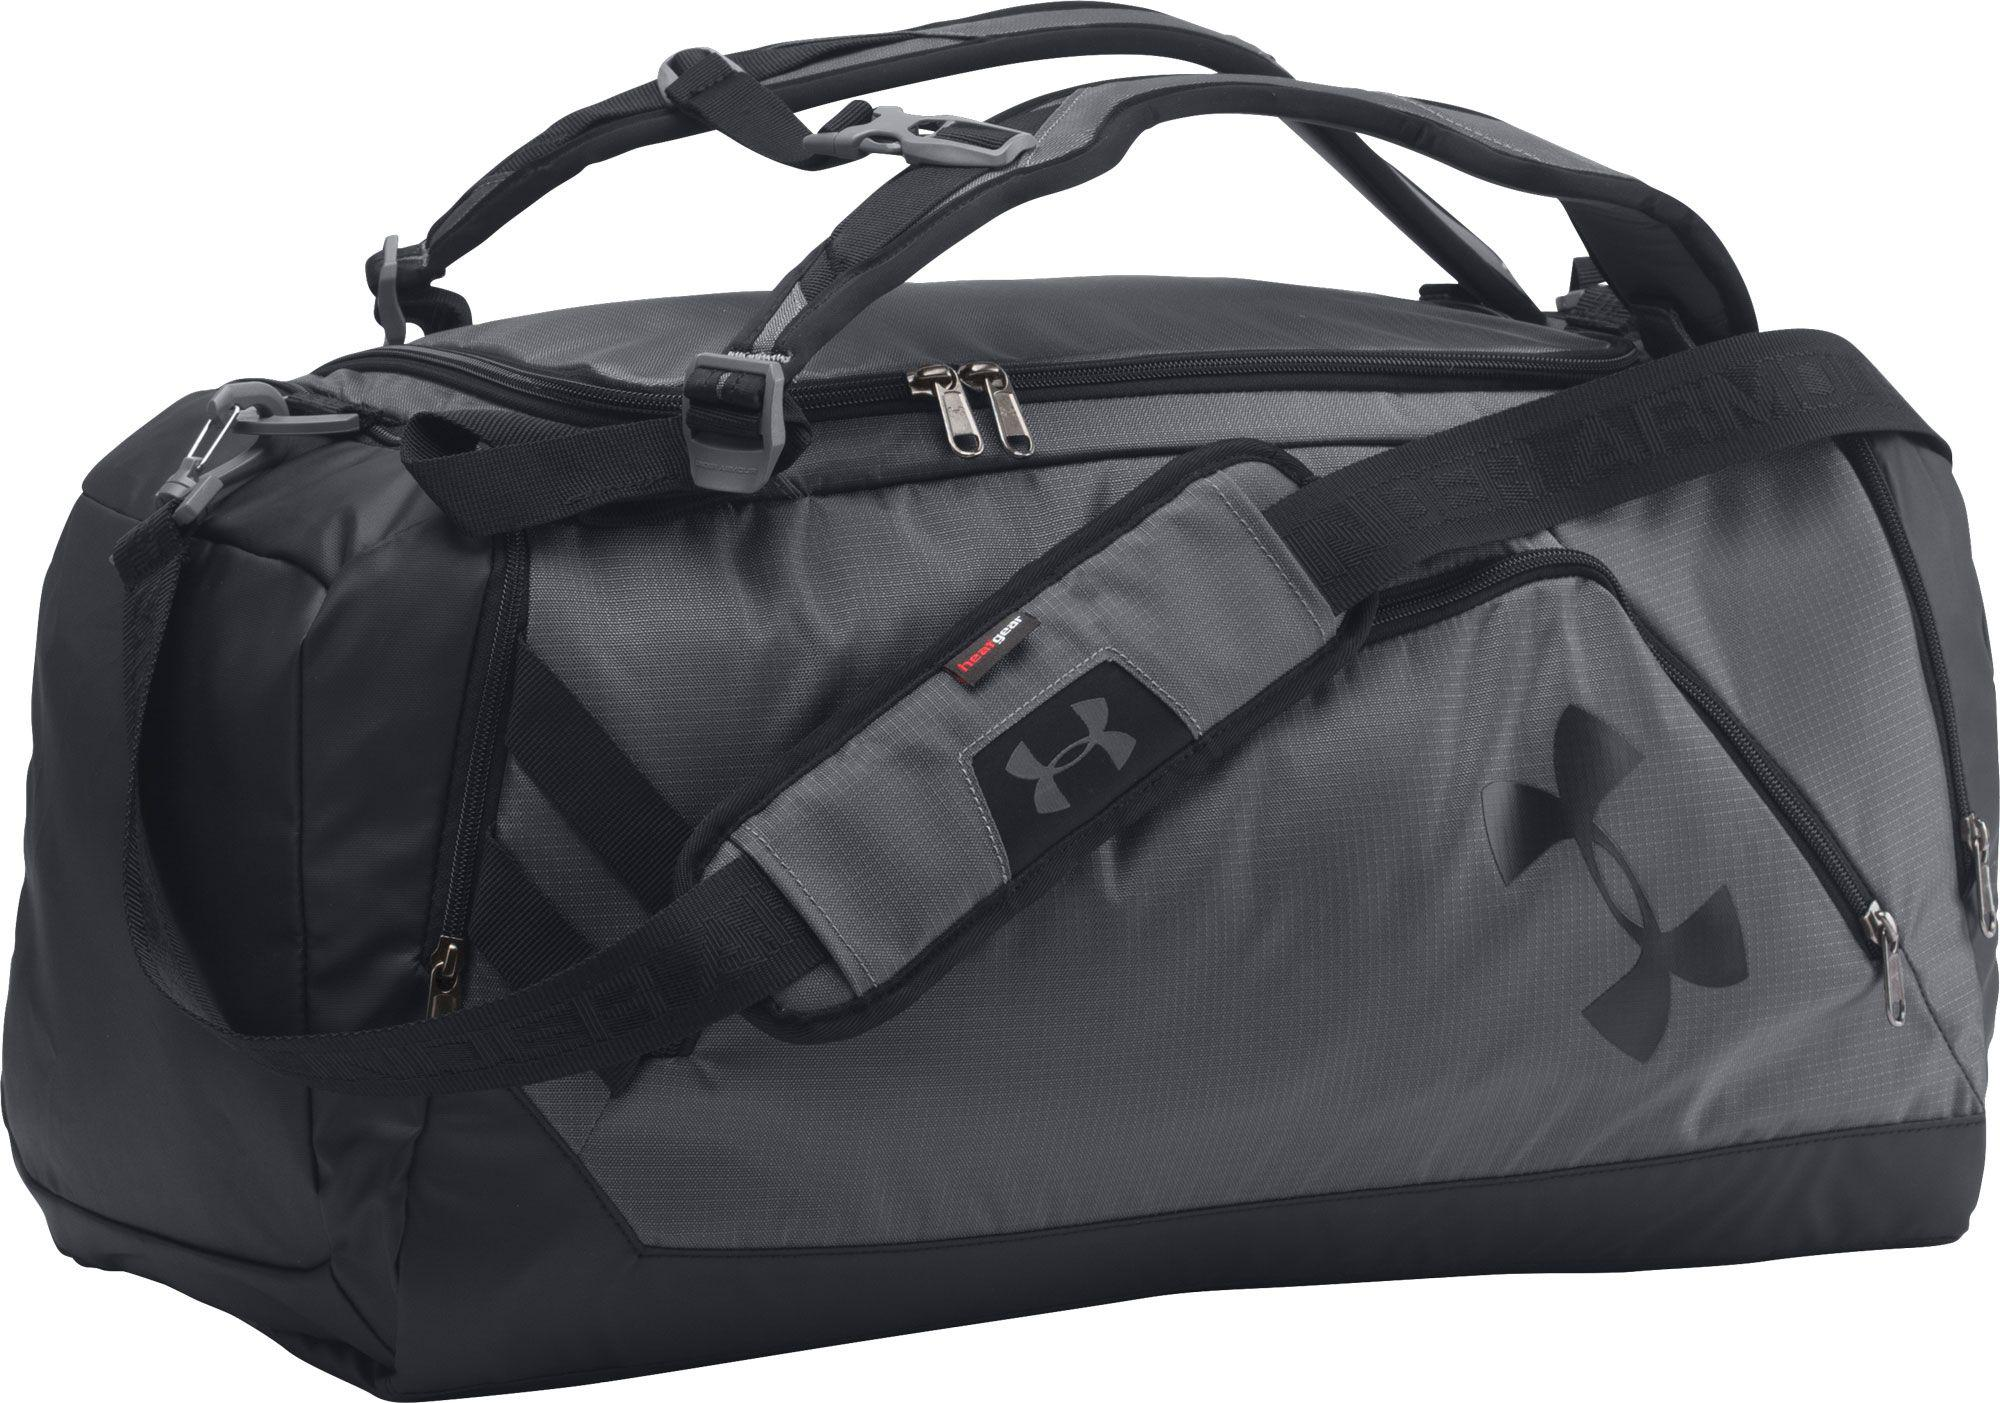 58860b046aaae Under Armour Black Contain Duo Backpack Duffle for men